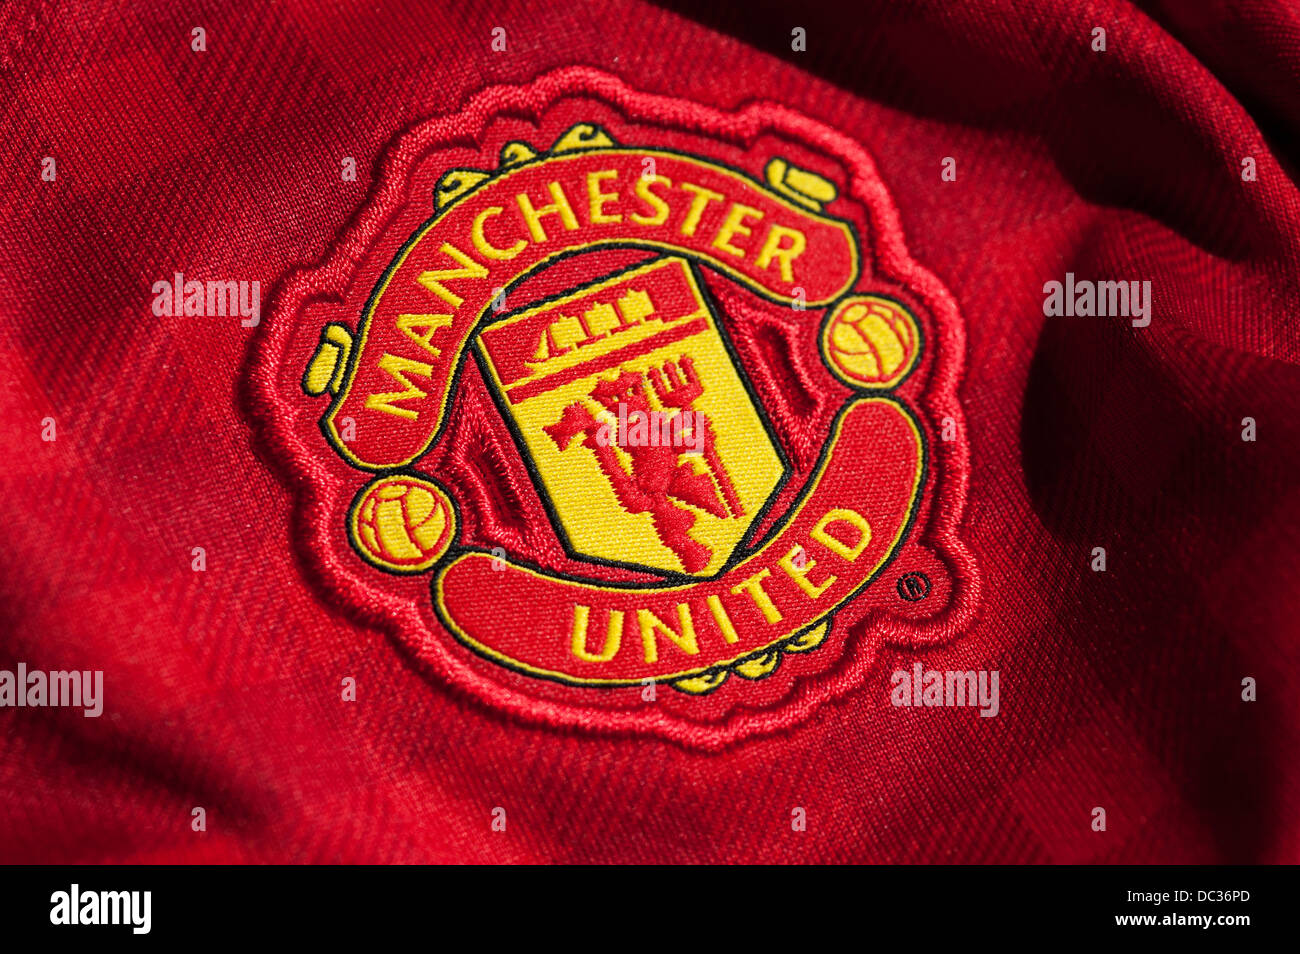 Manchester United Football Club Crest Stock Photo 59078165